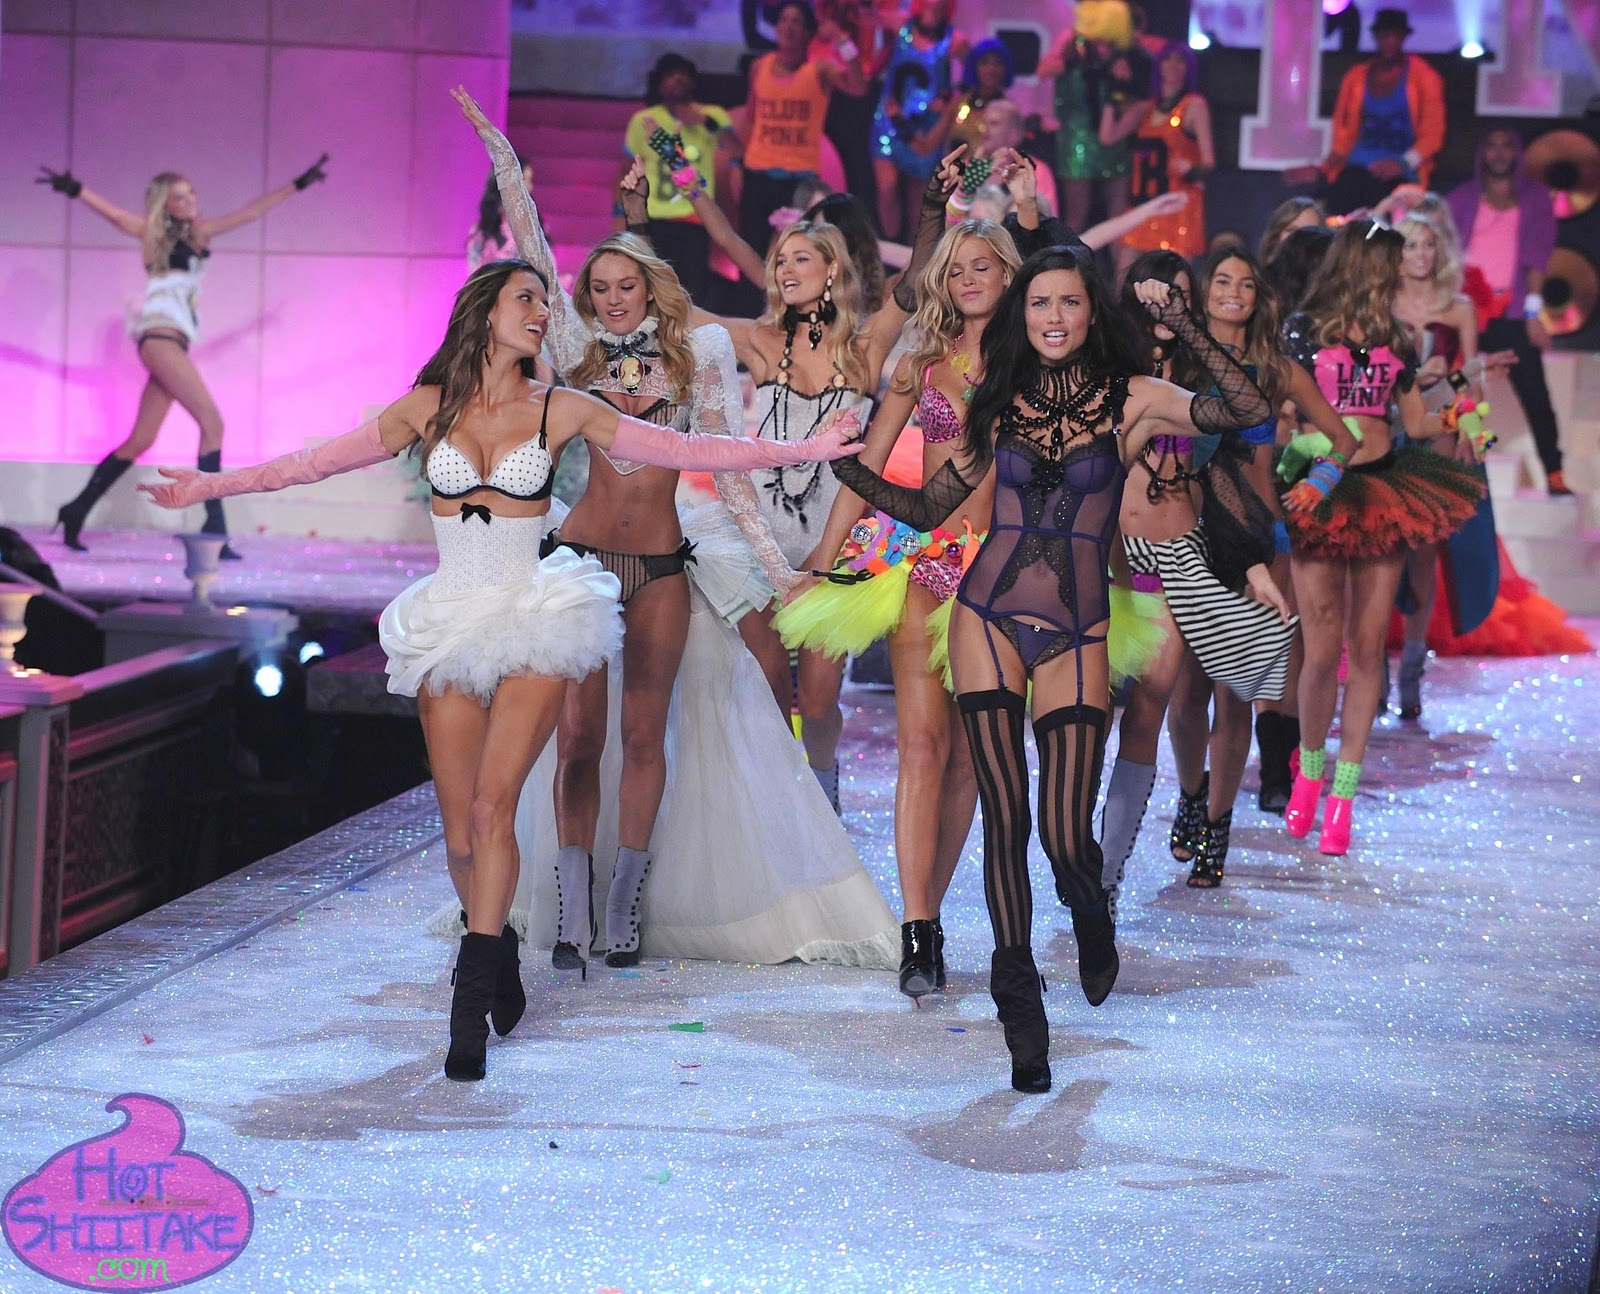 Alessandra Ambrosio and Adriana Lima Victoria's Secret Fashion Show 2011